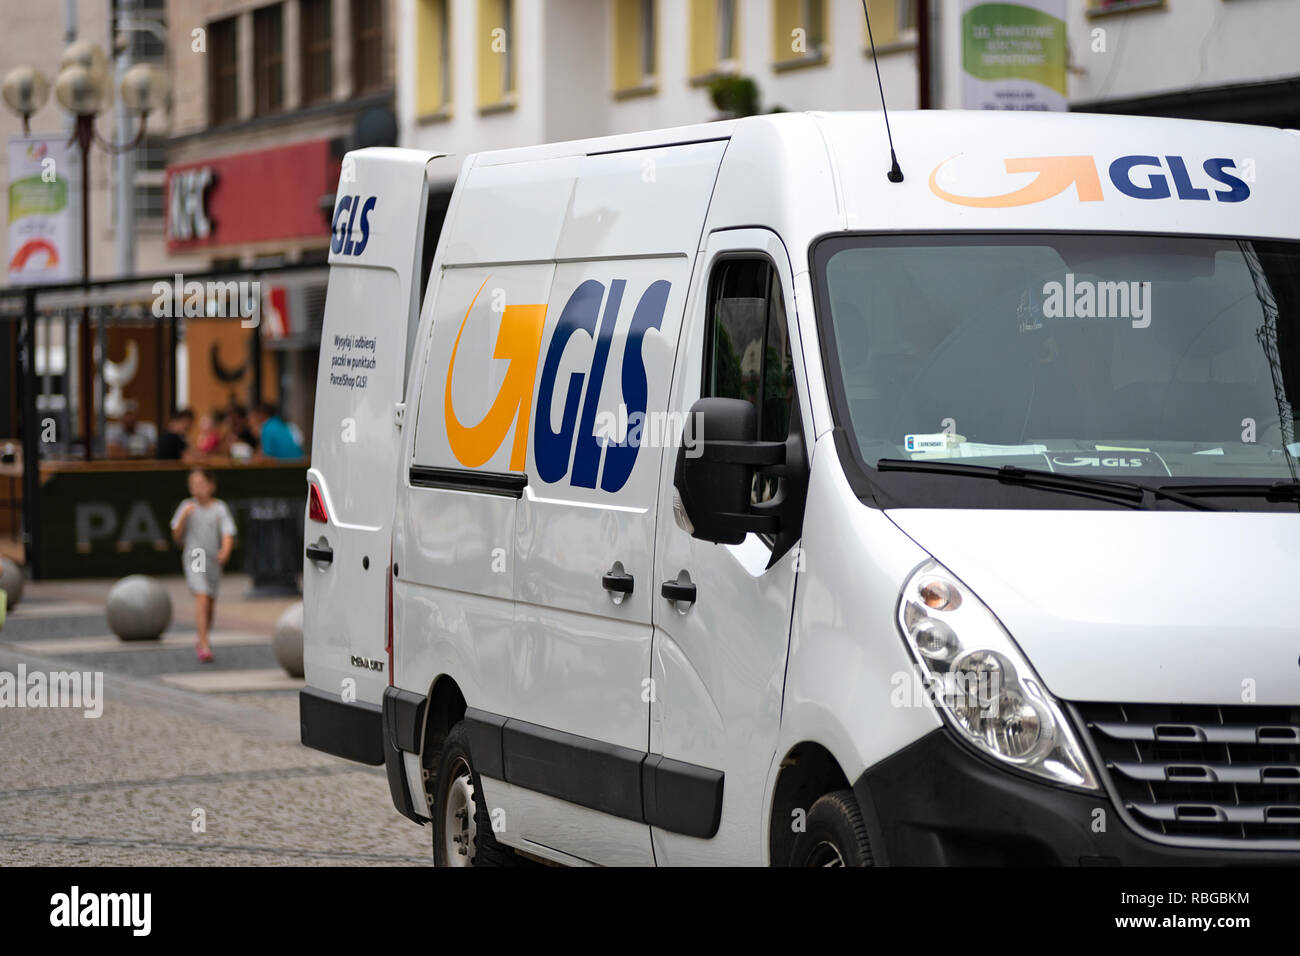 General Delivery Stock Photos & General Delivery Stock Images - Alamy